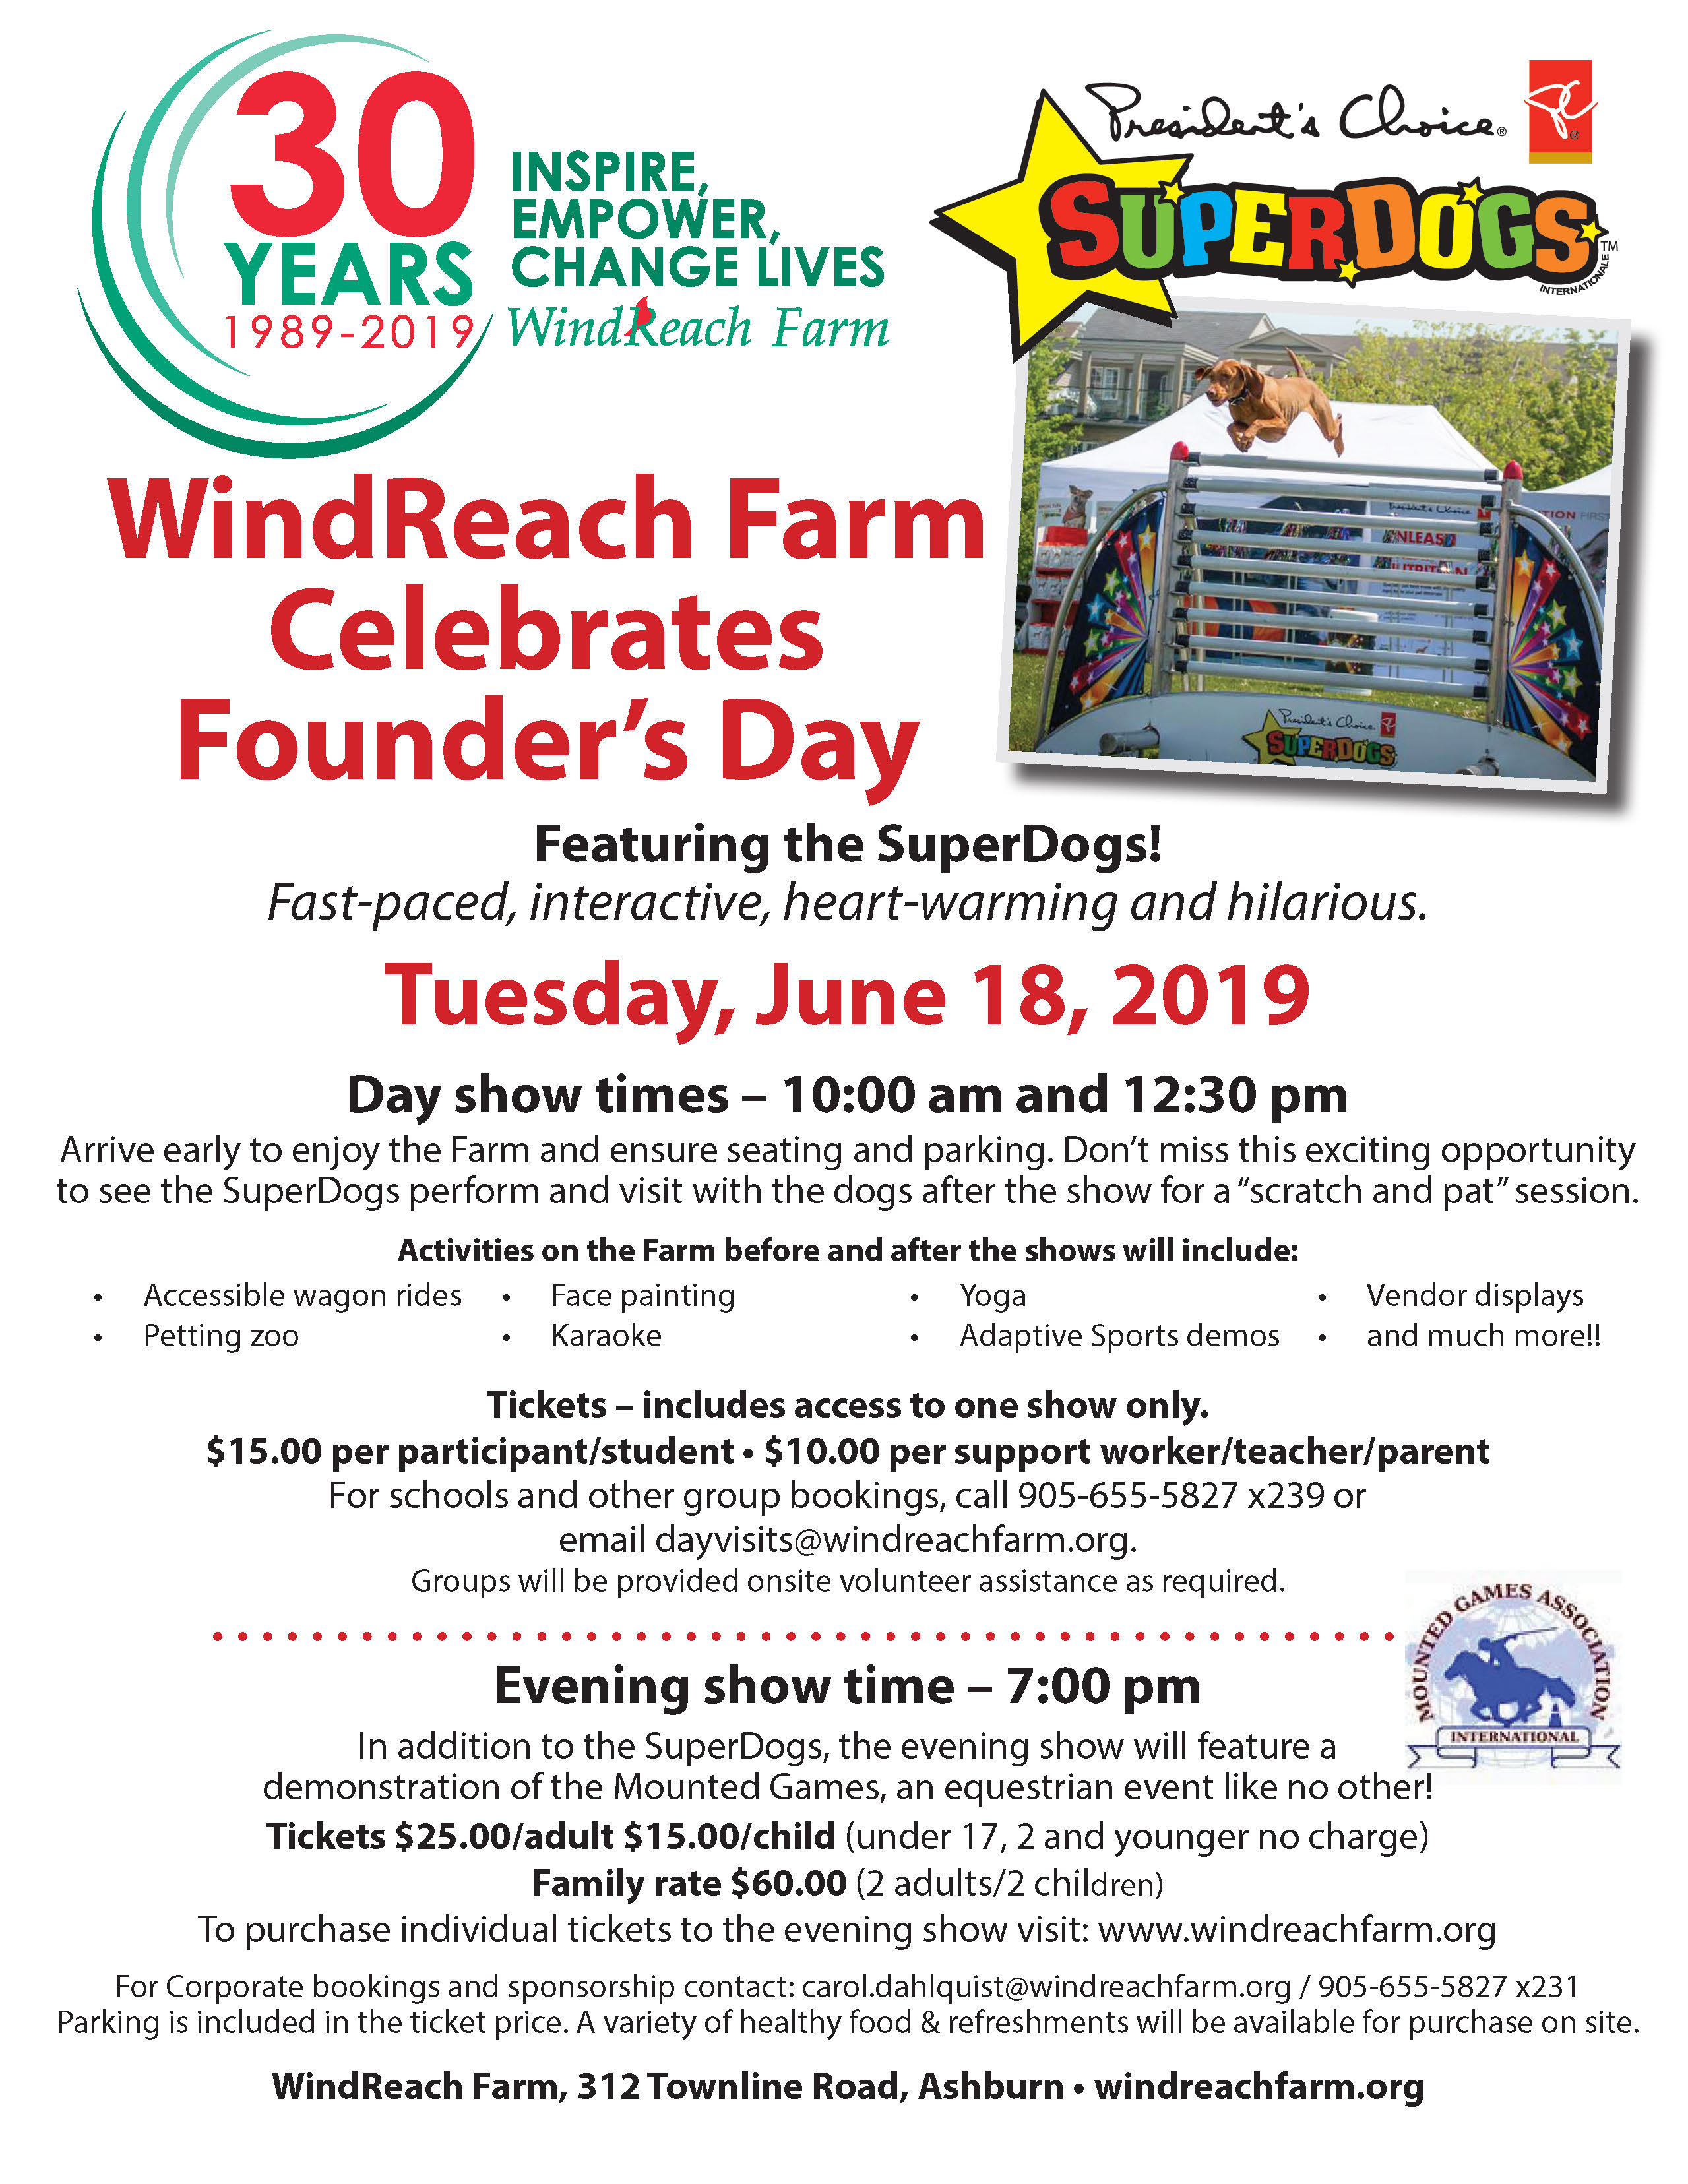 Windreach Founder's Day